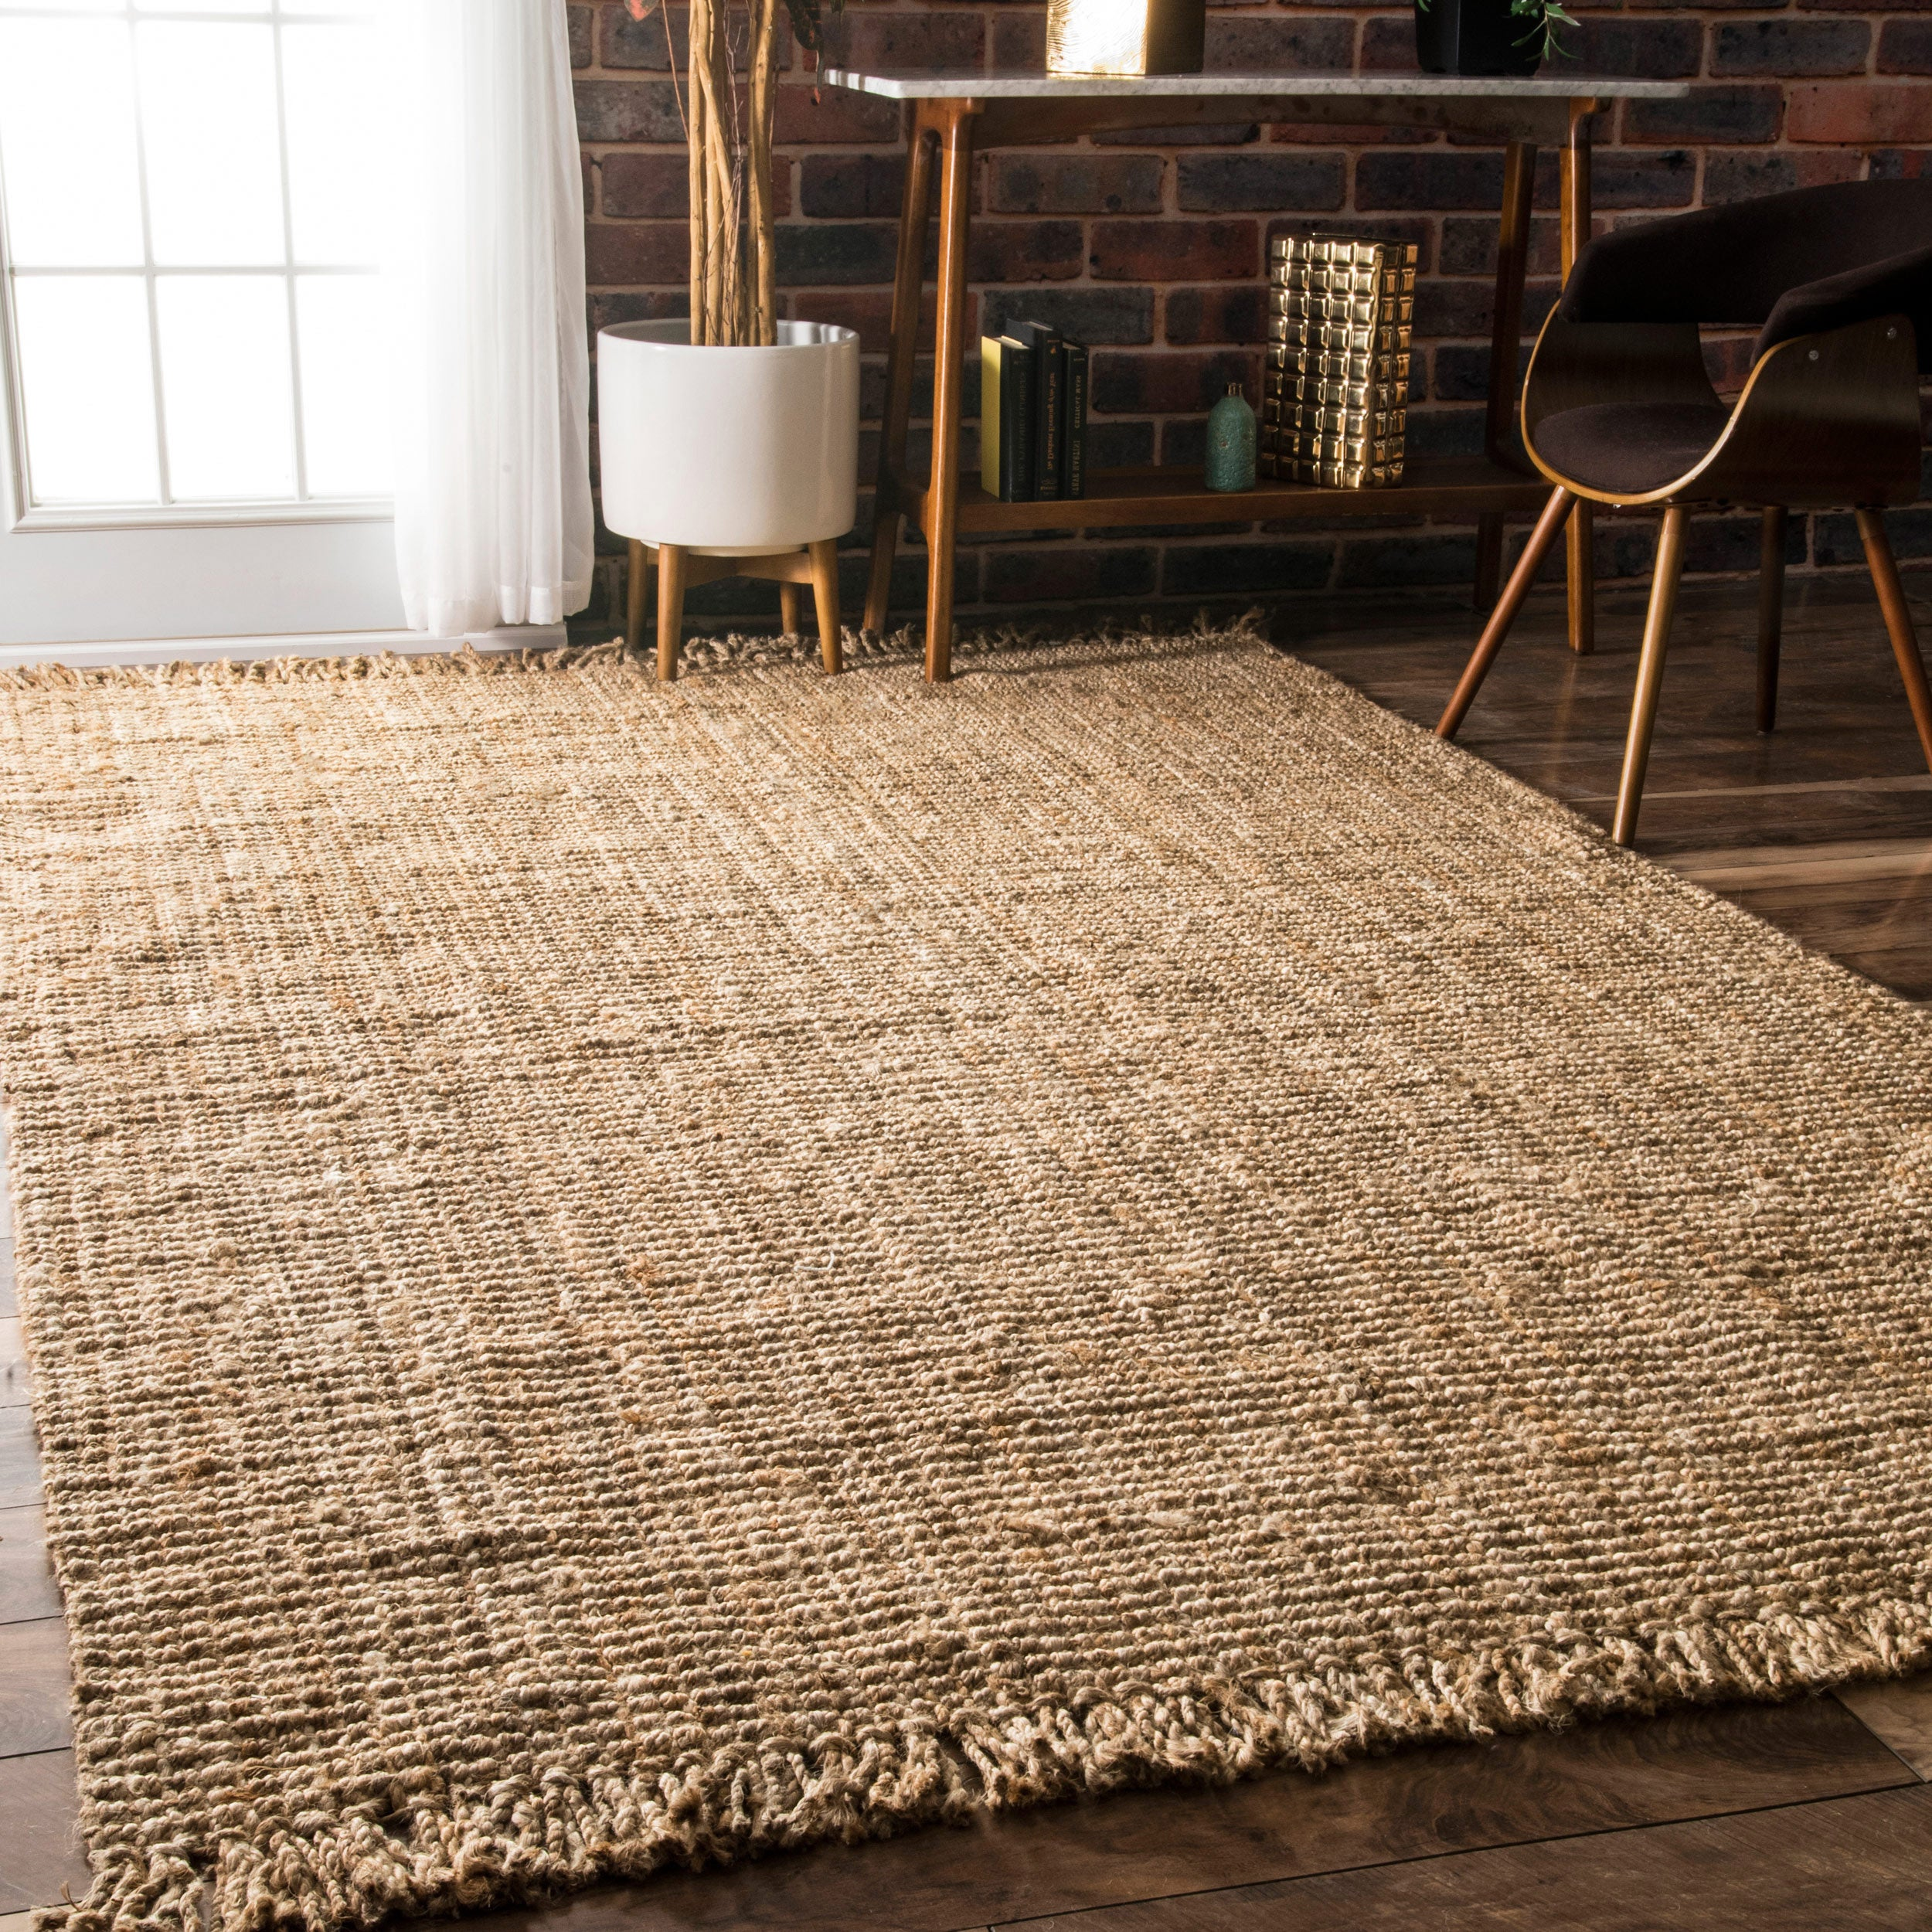 sisal from my dining farmhouse time favorite usa kitchen rug makoever all chunky jute rugs city room